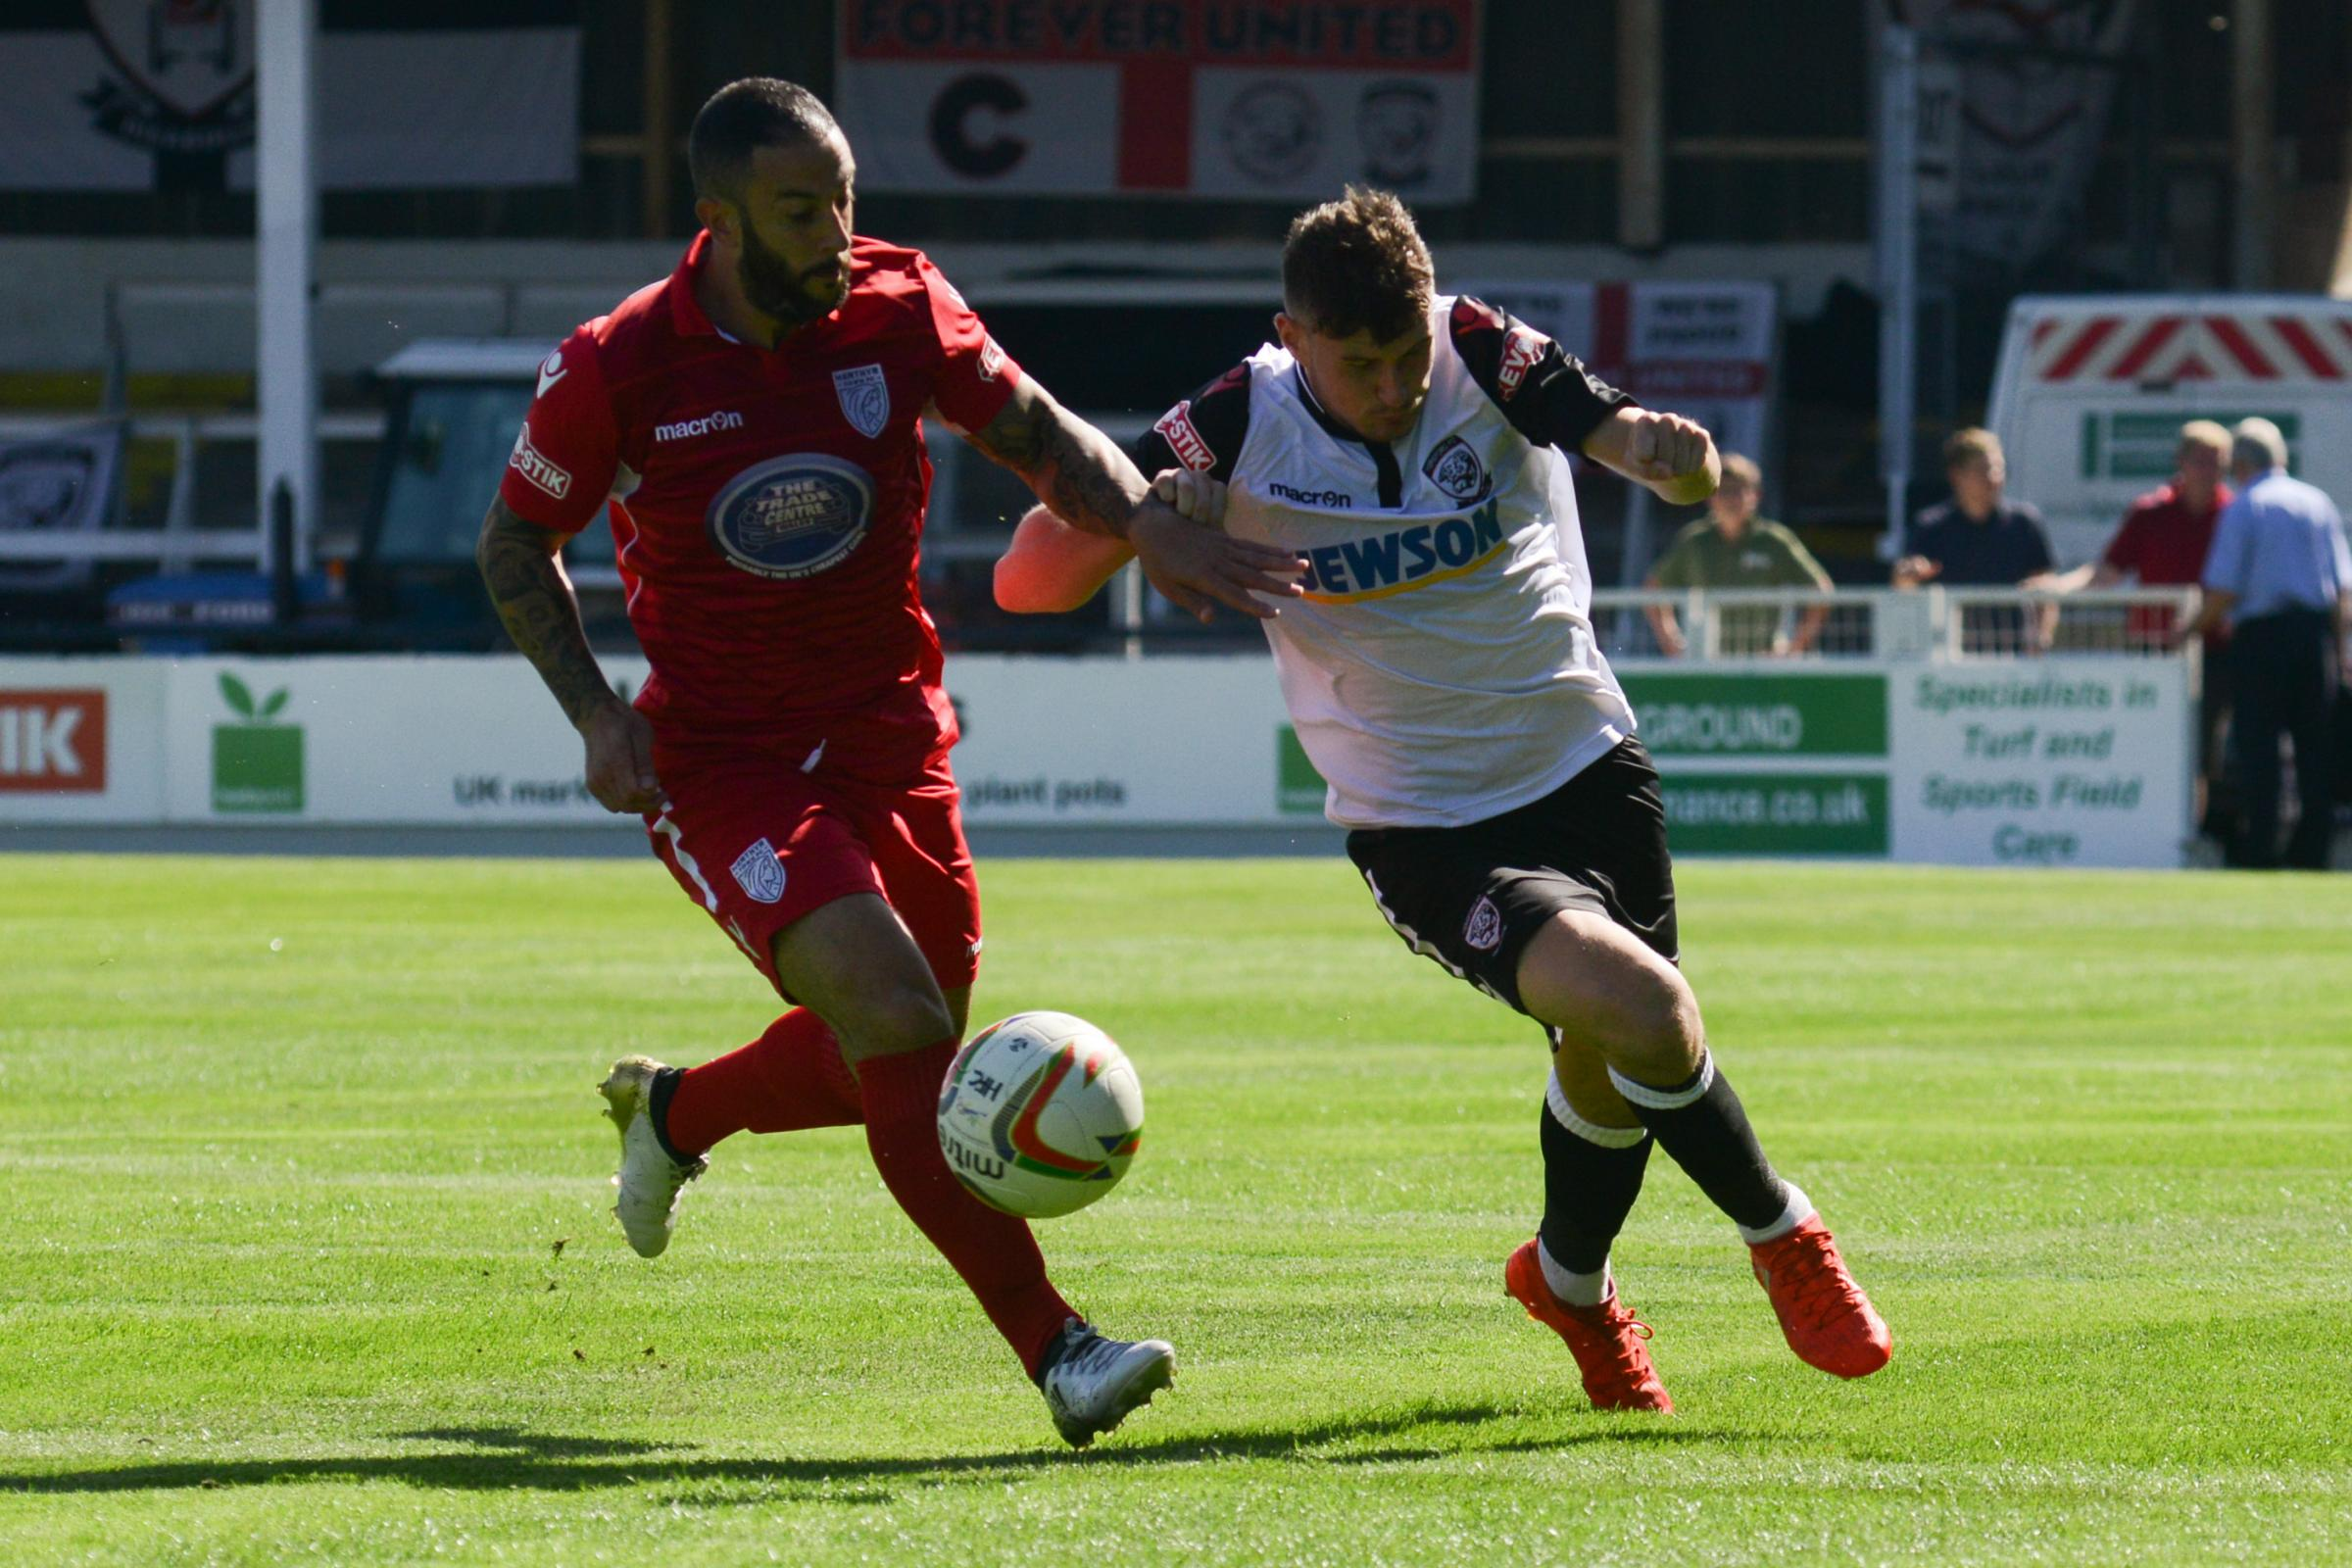 Stuart Fleetwood in action for Merthyr Town during his side's game against Hereford earlier this season